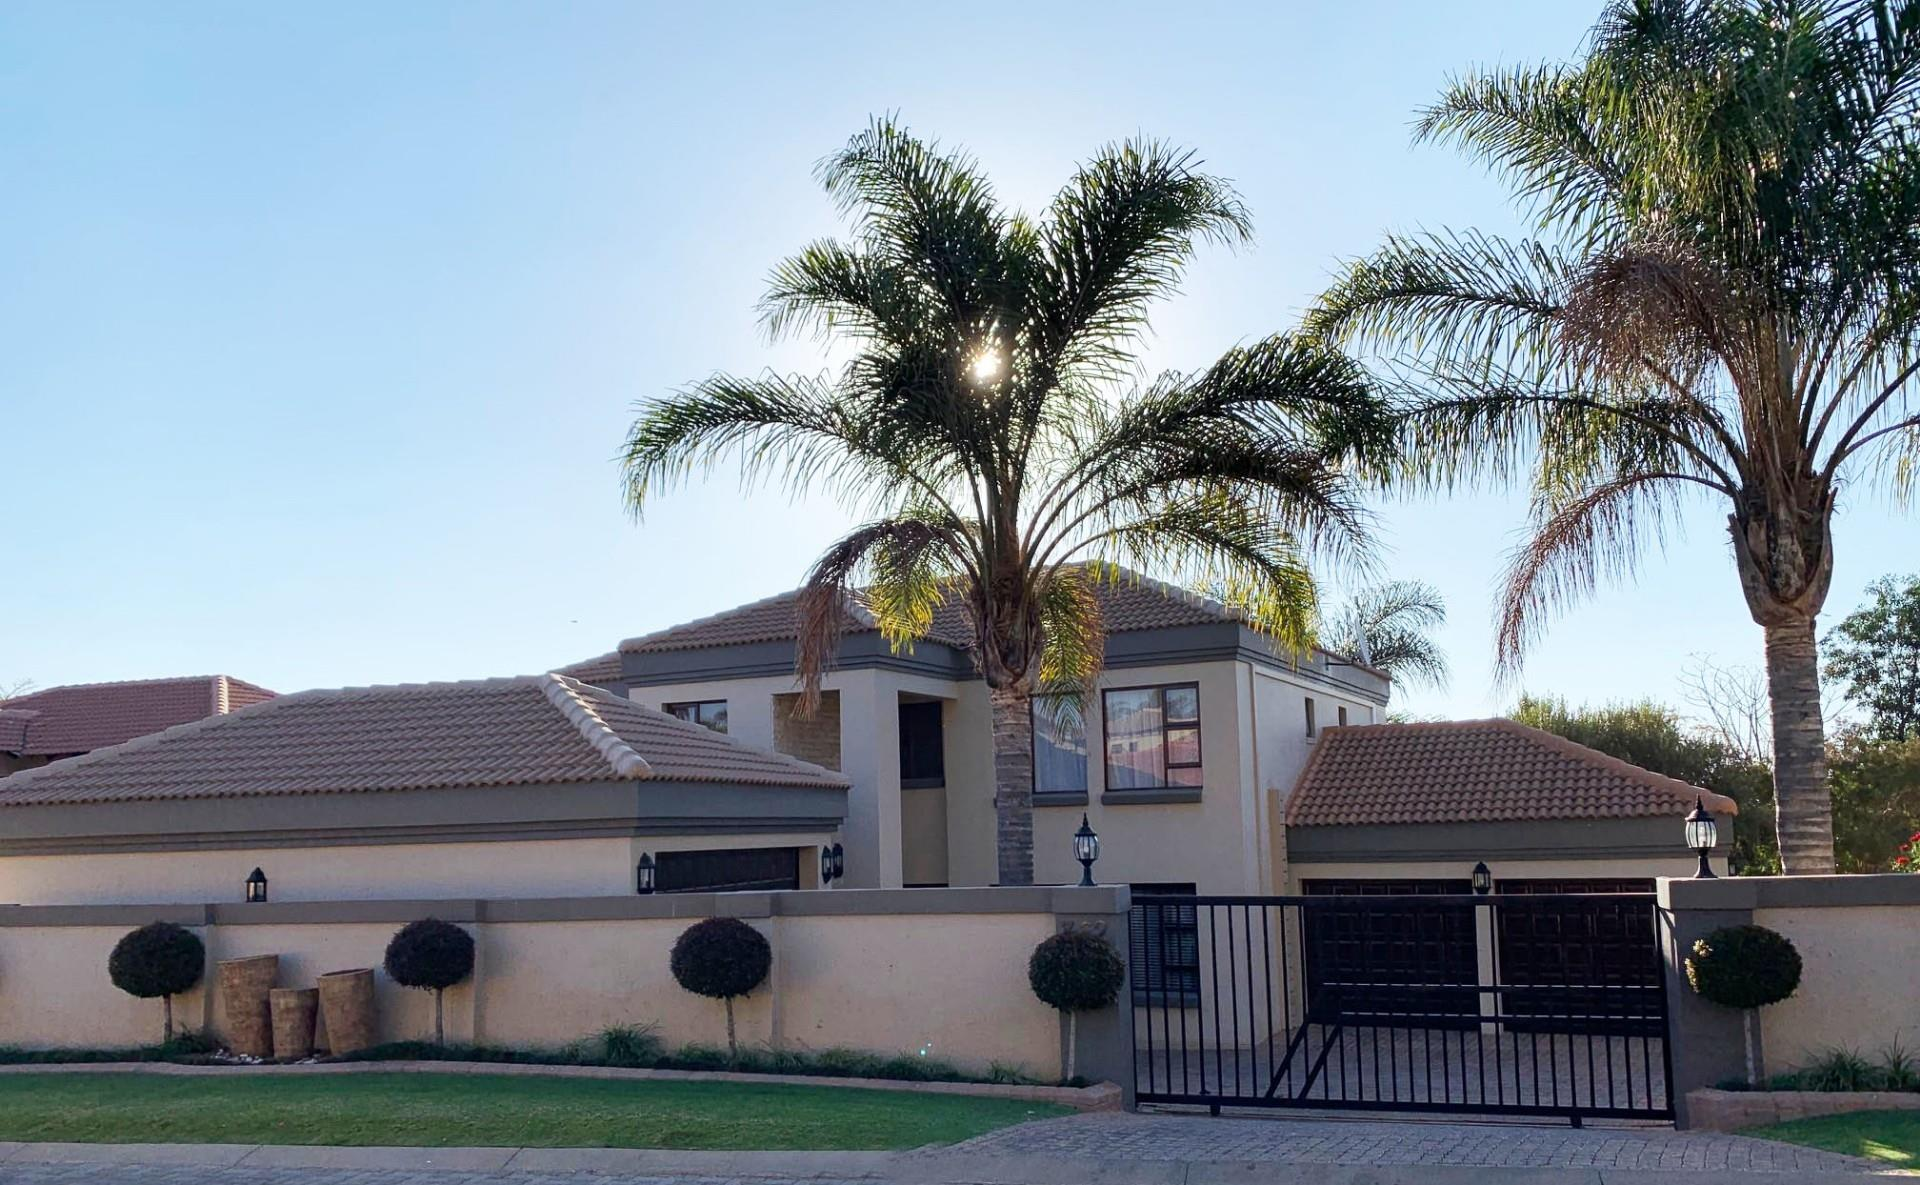 4 bedroom House in Ruimsig Country Estate | RE/MAX